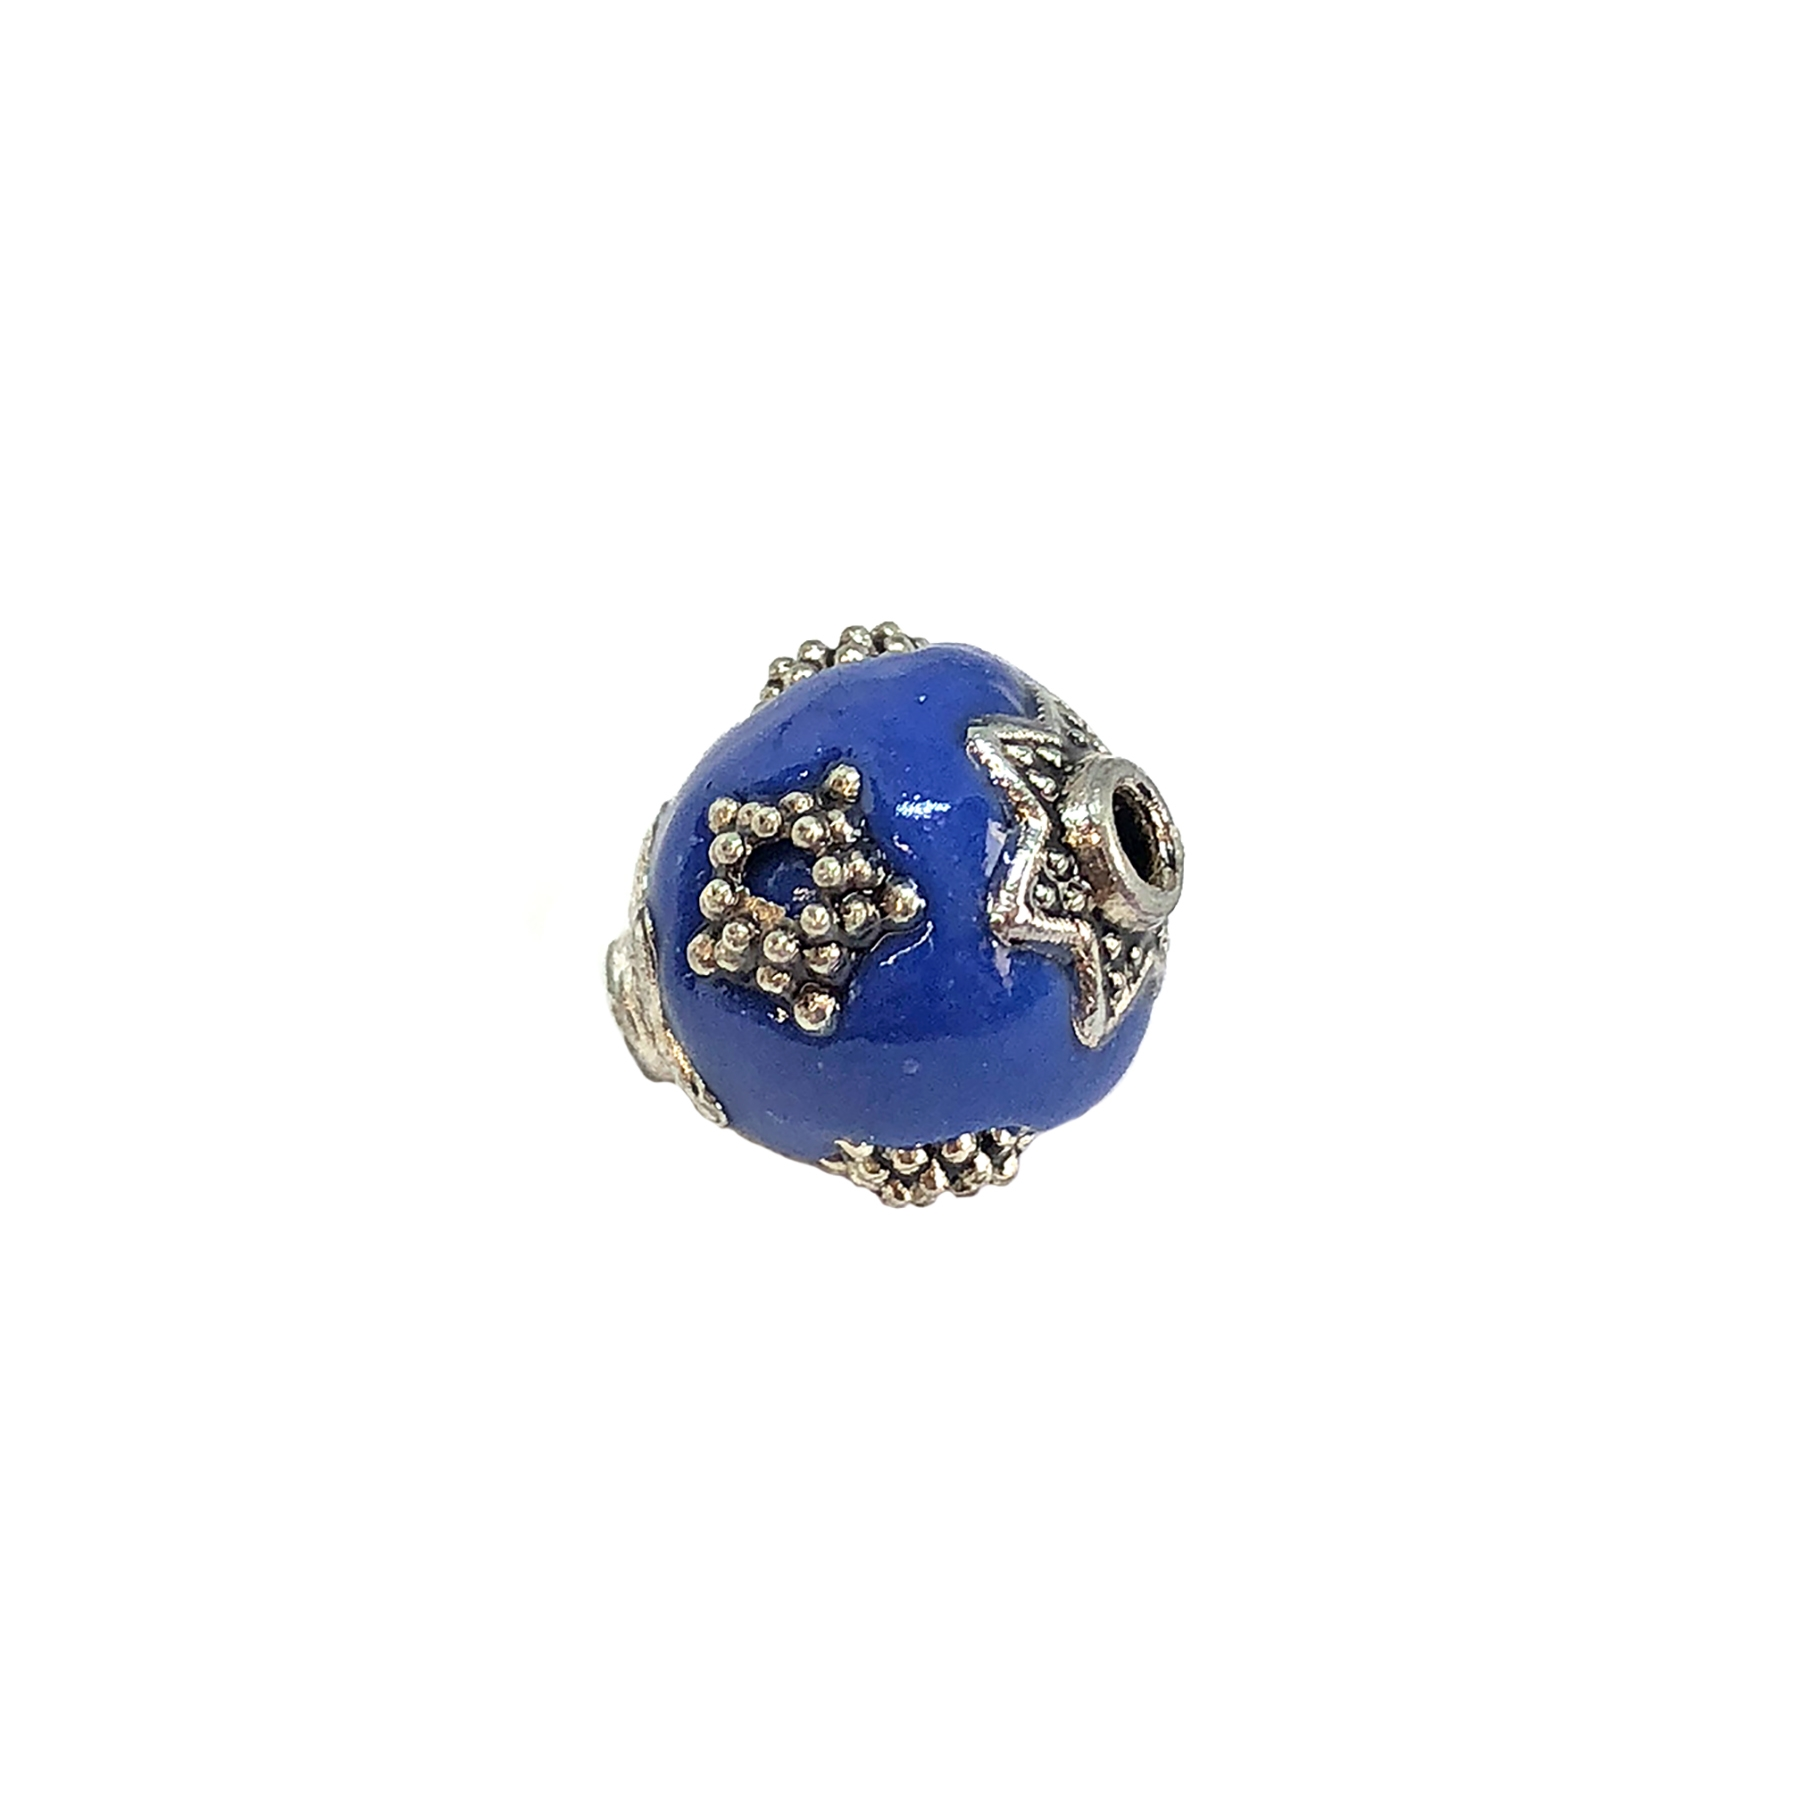 handmade Indonesian beads, cobalt/silver, 11mm, beads, blue beads, silver star beads, plastic beads, resin beads, beading supplies, jewelry making, jewelry supplies, vintage supplies, cobalt bead, star accenting beads, 09208